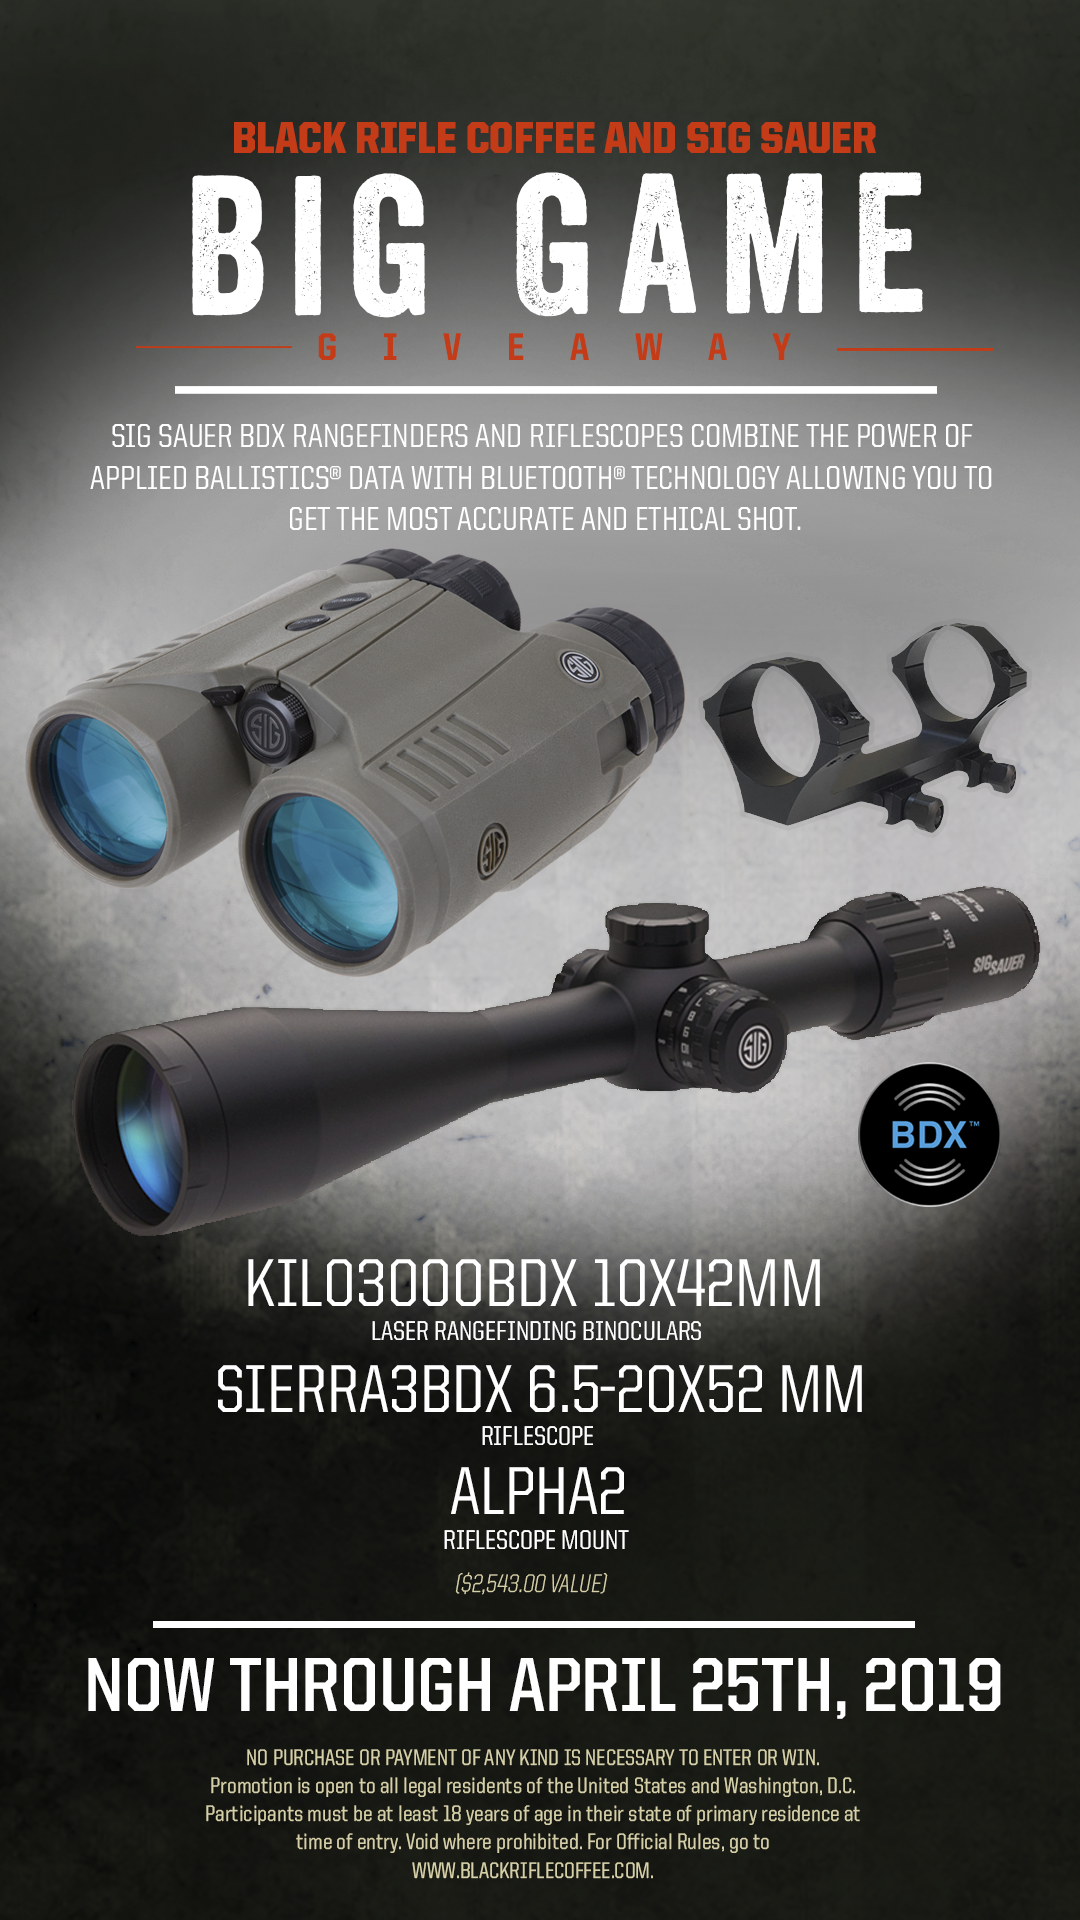 Enter for a chance to win Kilo3000BDX 10x42mm Laser Rangefinding Binoculars, Sierra3BDX 6.5-20x52 Riflescope and Alpha2 Riflescope Mount from Black Rifle Coffee Company Giveaway Image